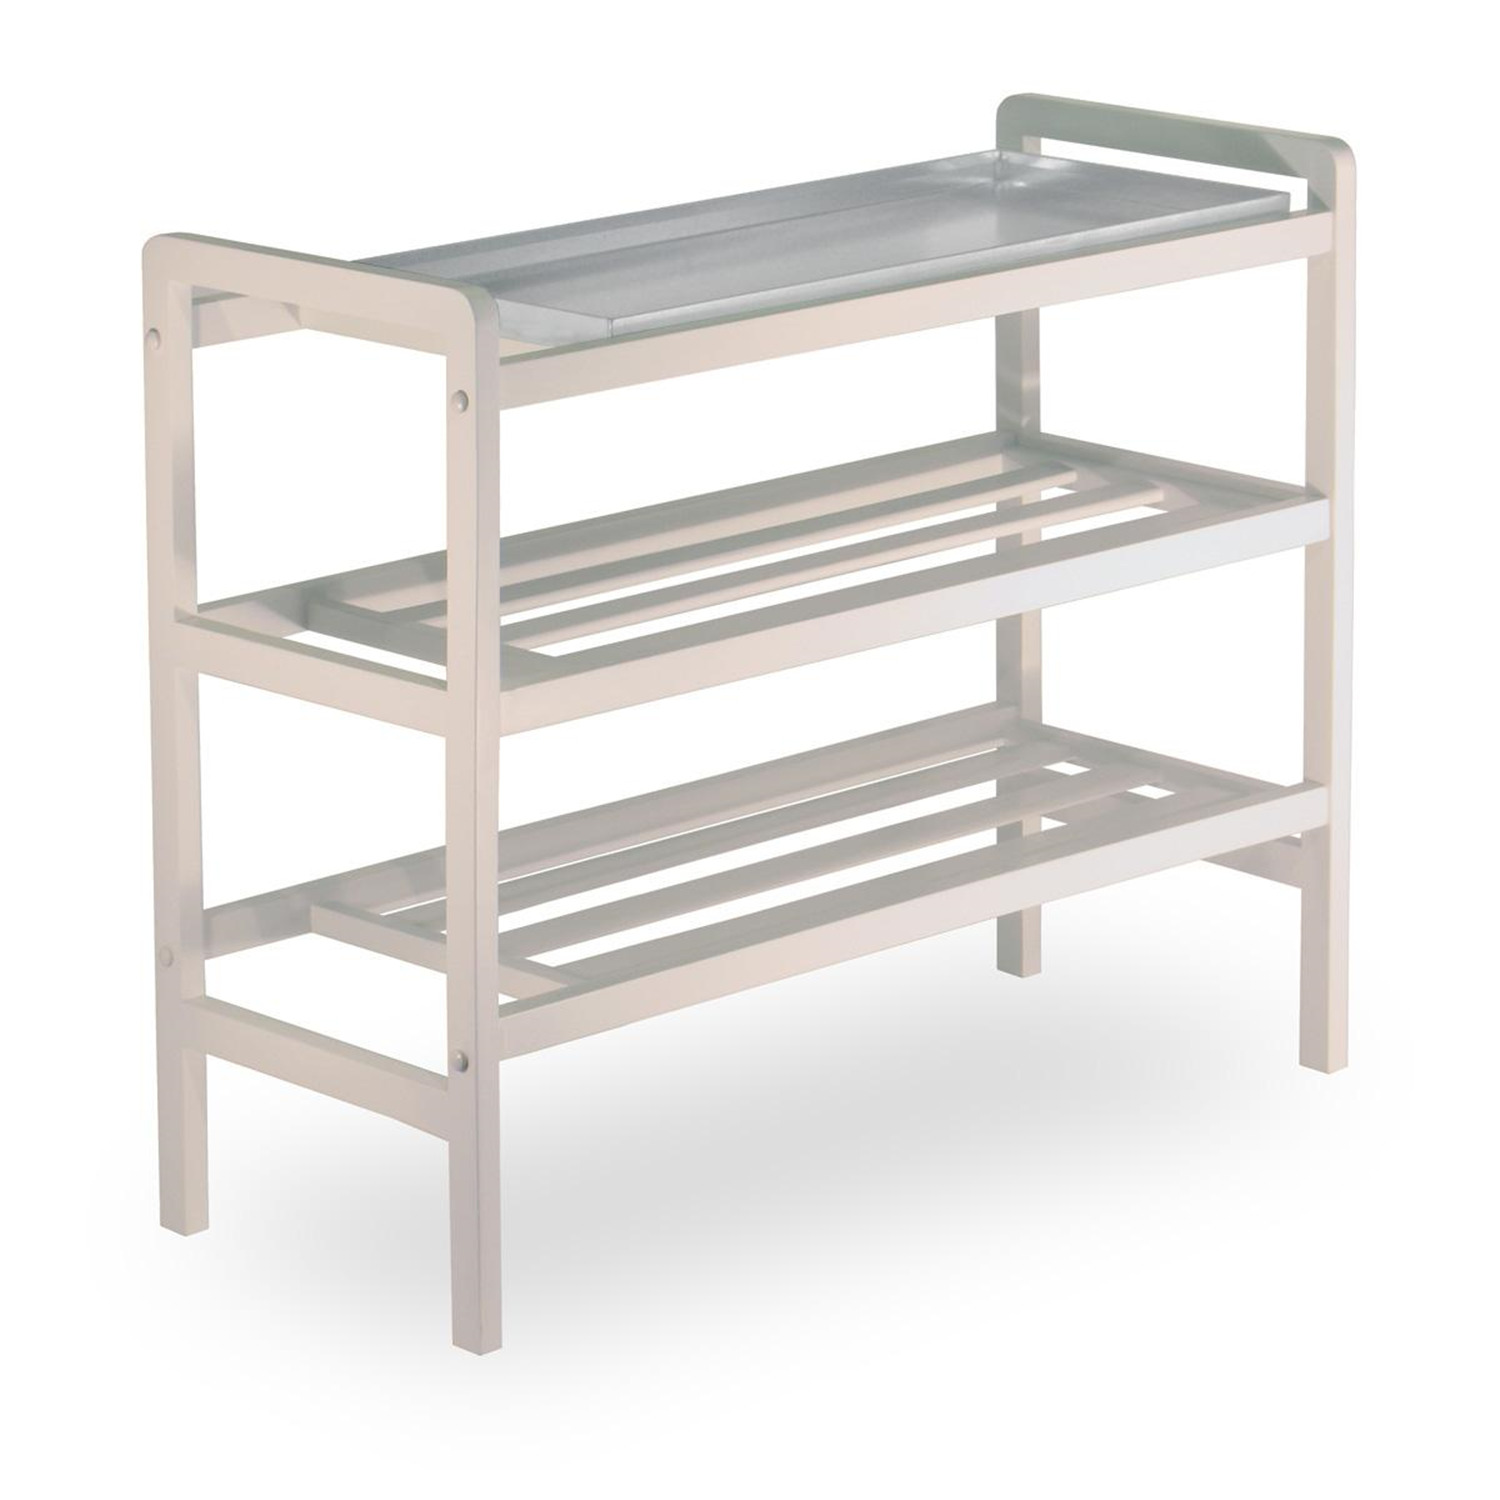 Mudroom Shoe Rack with Tray and shelf - [12633]  sc 1 st  OJ Commerce & Mudroom Shoe Rack with Tray and shelf - $75.78 | OJCommerce